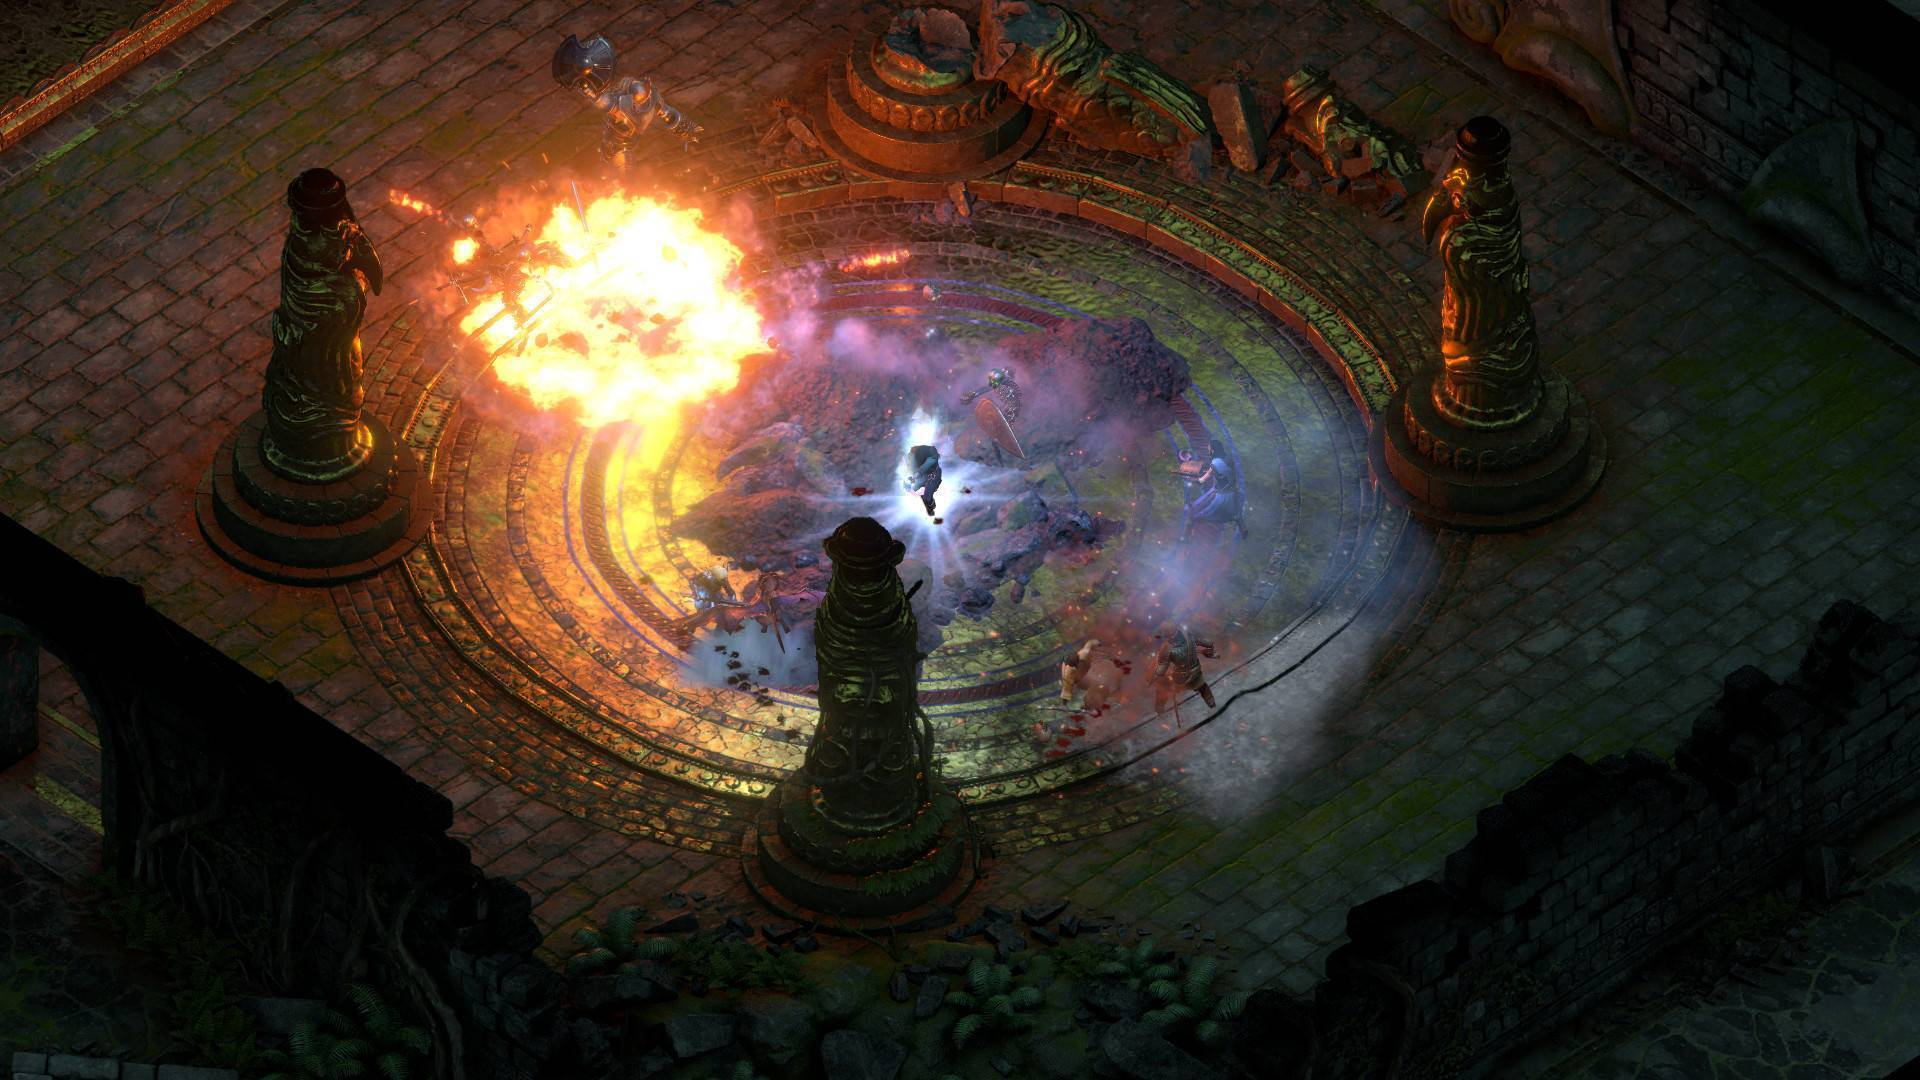 Buy Pillars of Eternity II Deadfire Season Pass pc cd key for Steam - compare prices